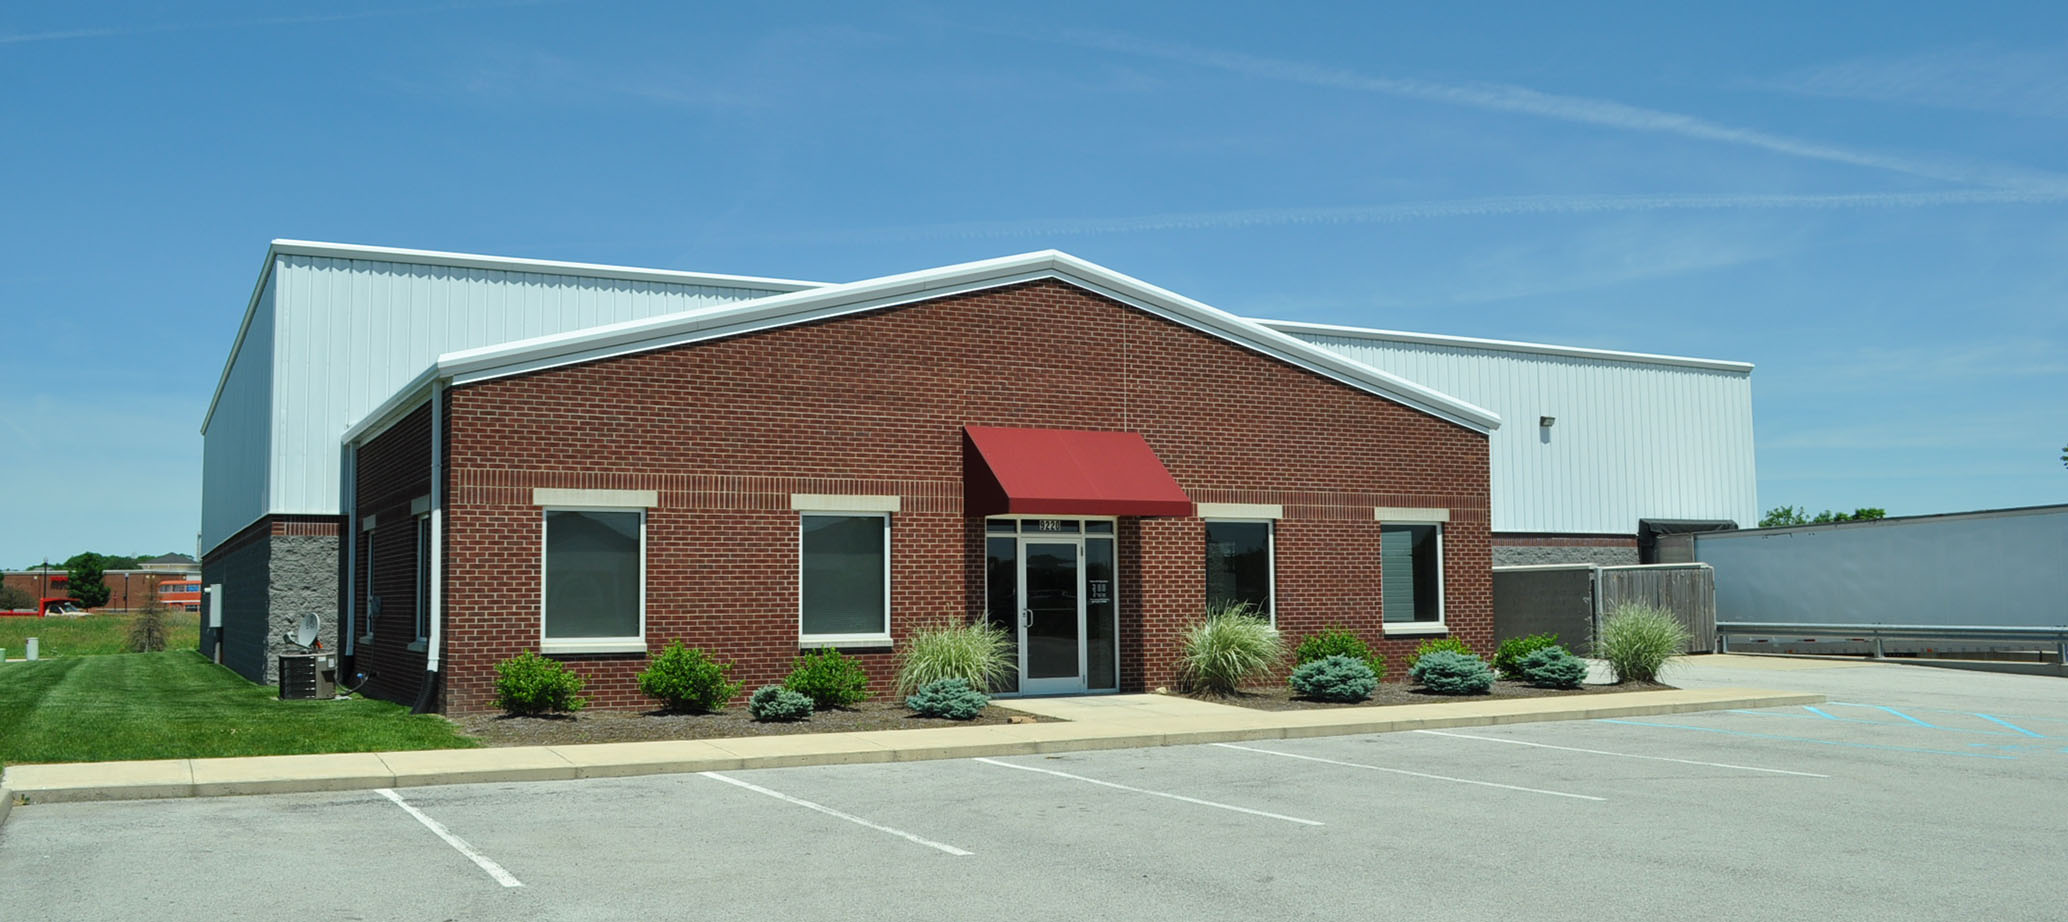 11,000 Square Feet Office Warehouse